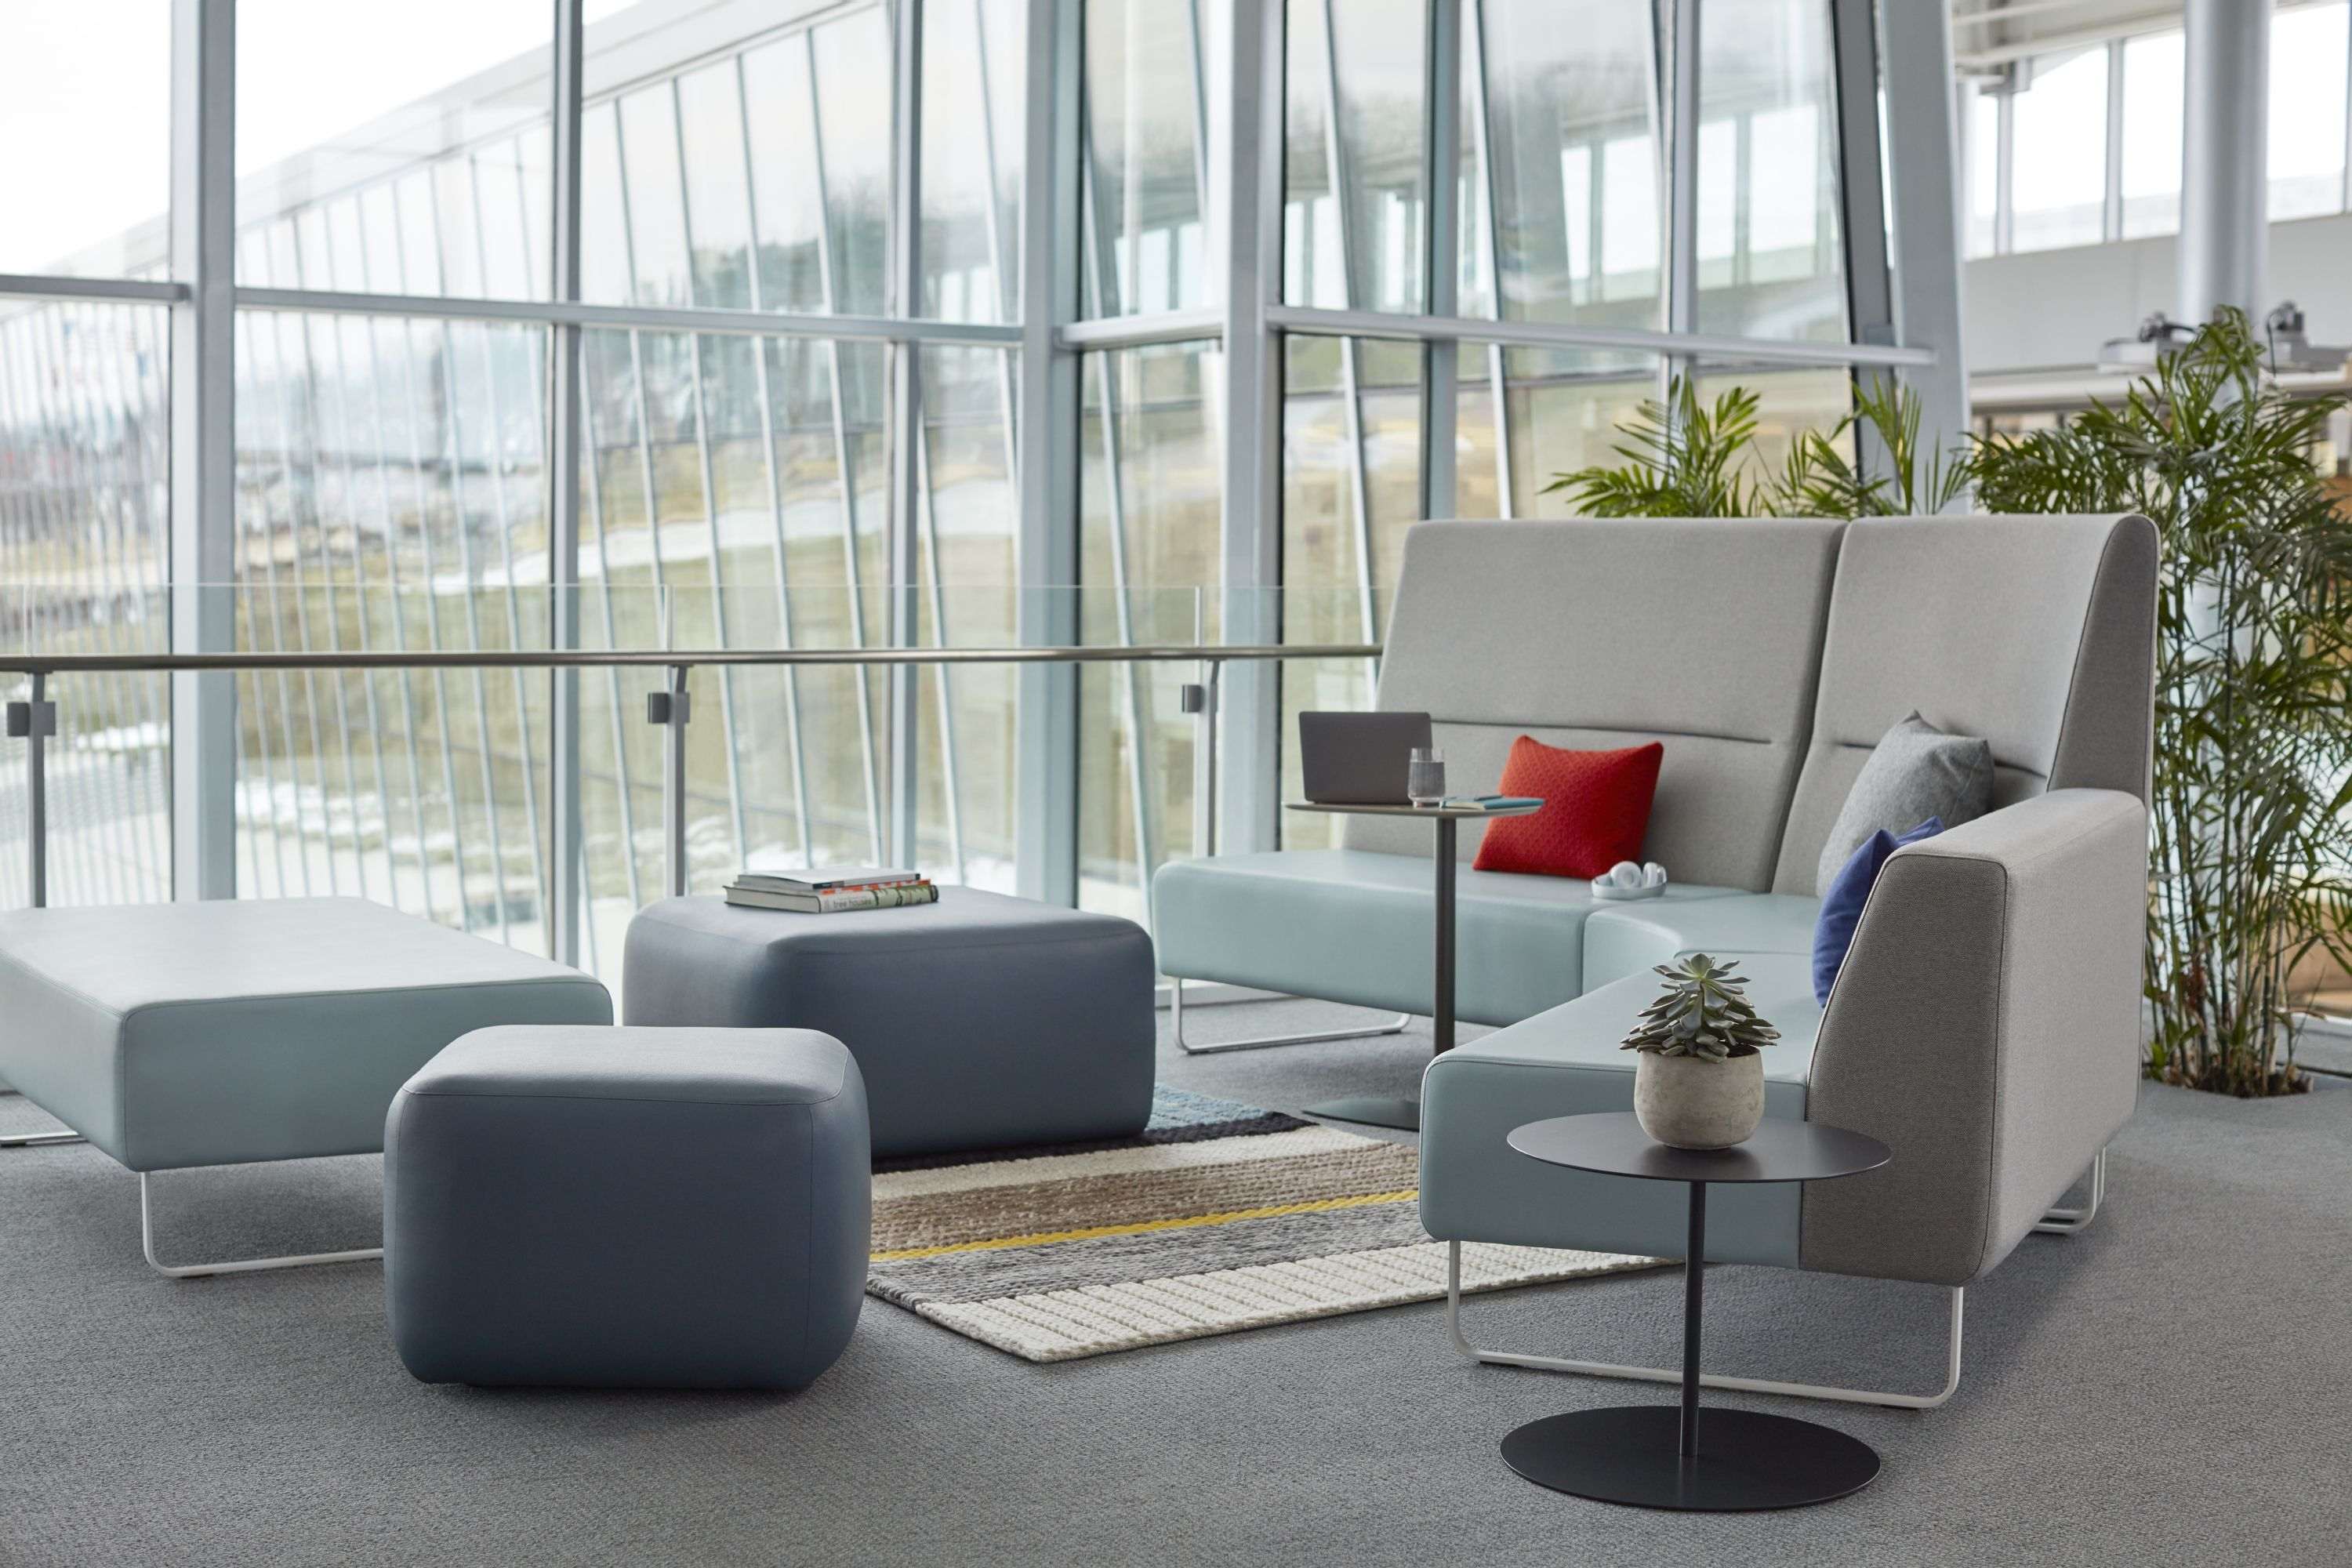 The haworth riverbend pebble designed by fletcher vaughan offers flexibility for smart space planning these pieces are easily configured to let you